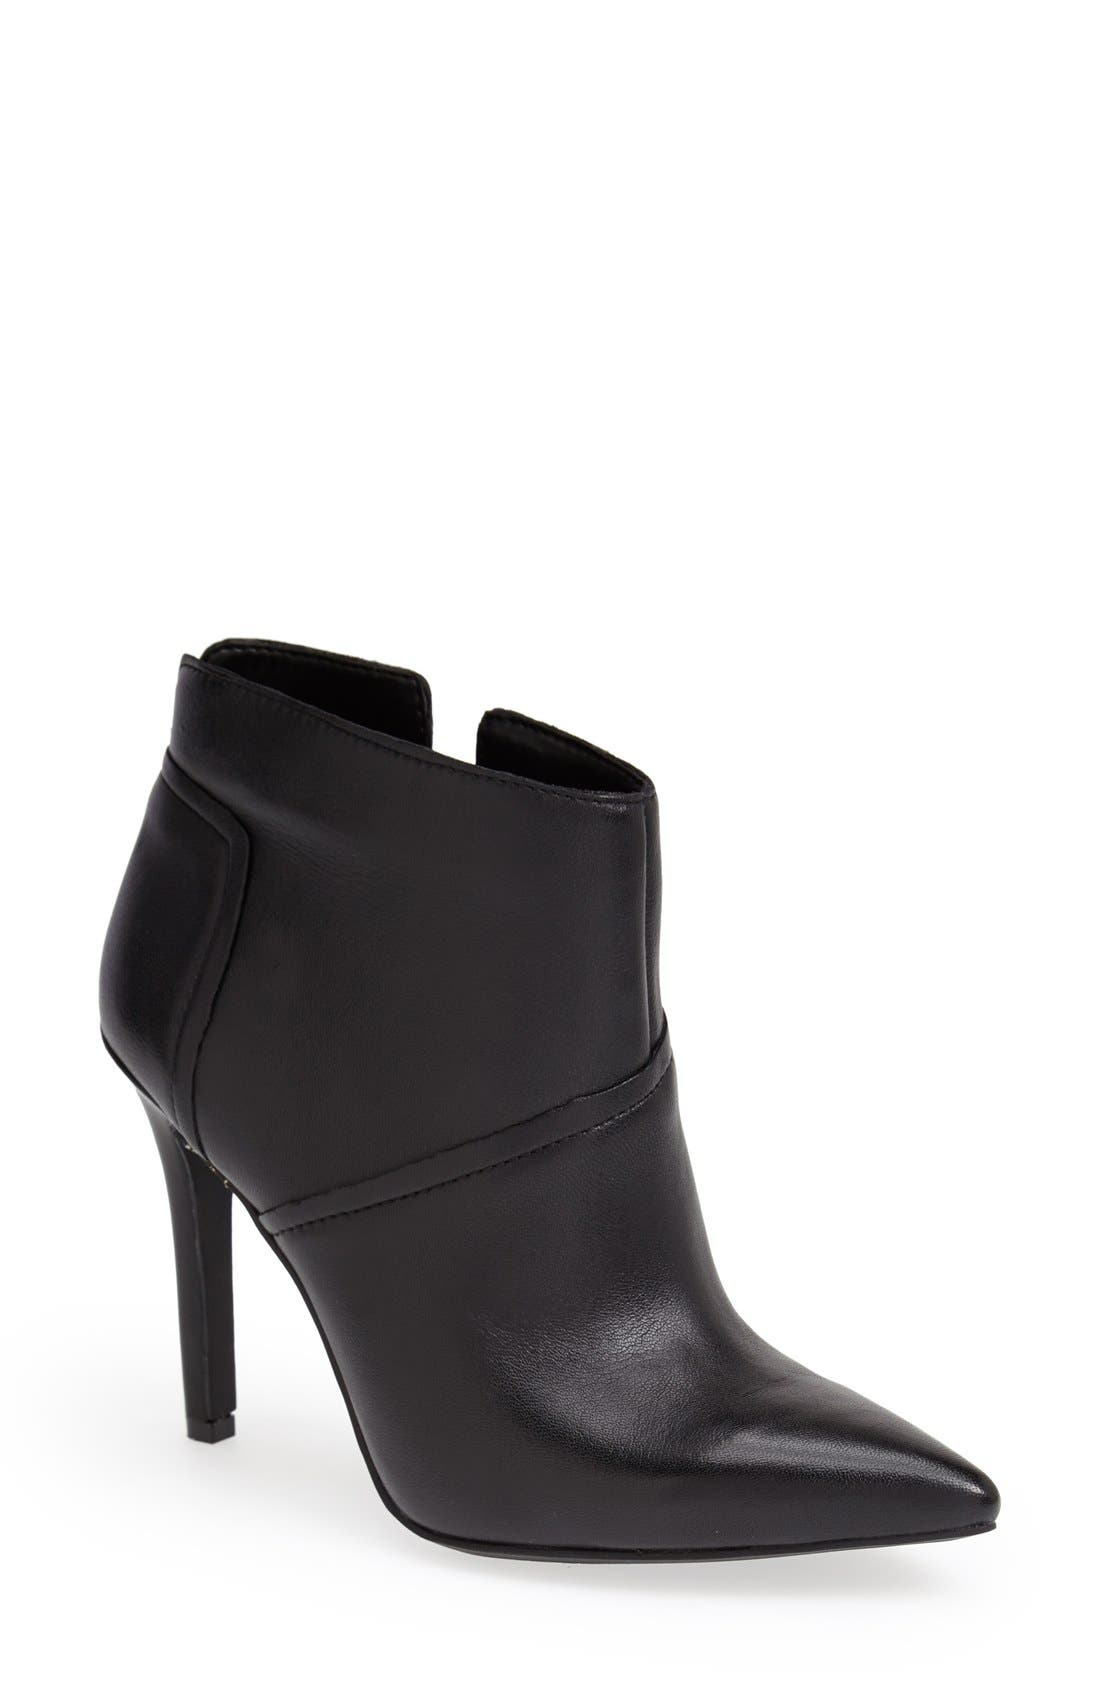 Main Image - Jessica Simpson 'Coolen' Pointy Toe Bootie (Women)